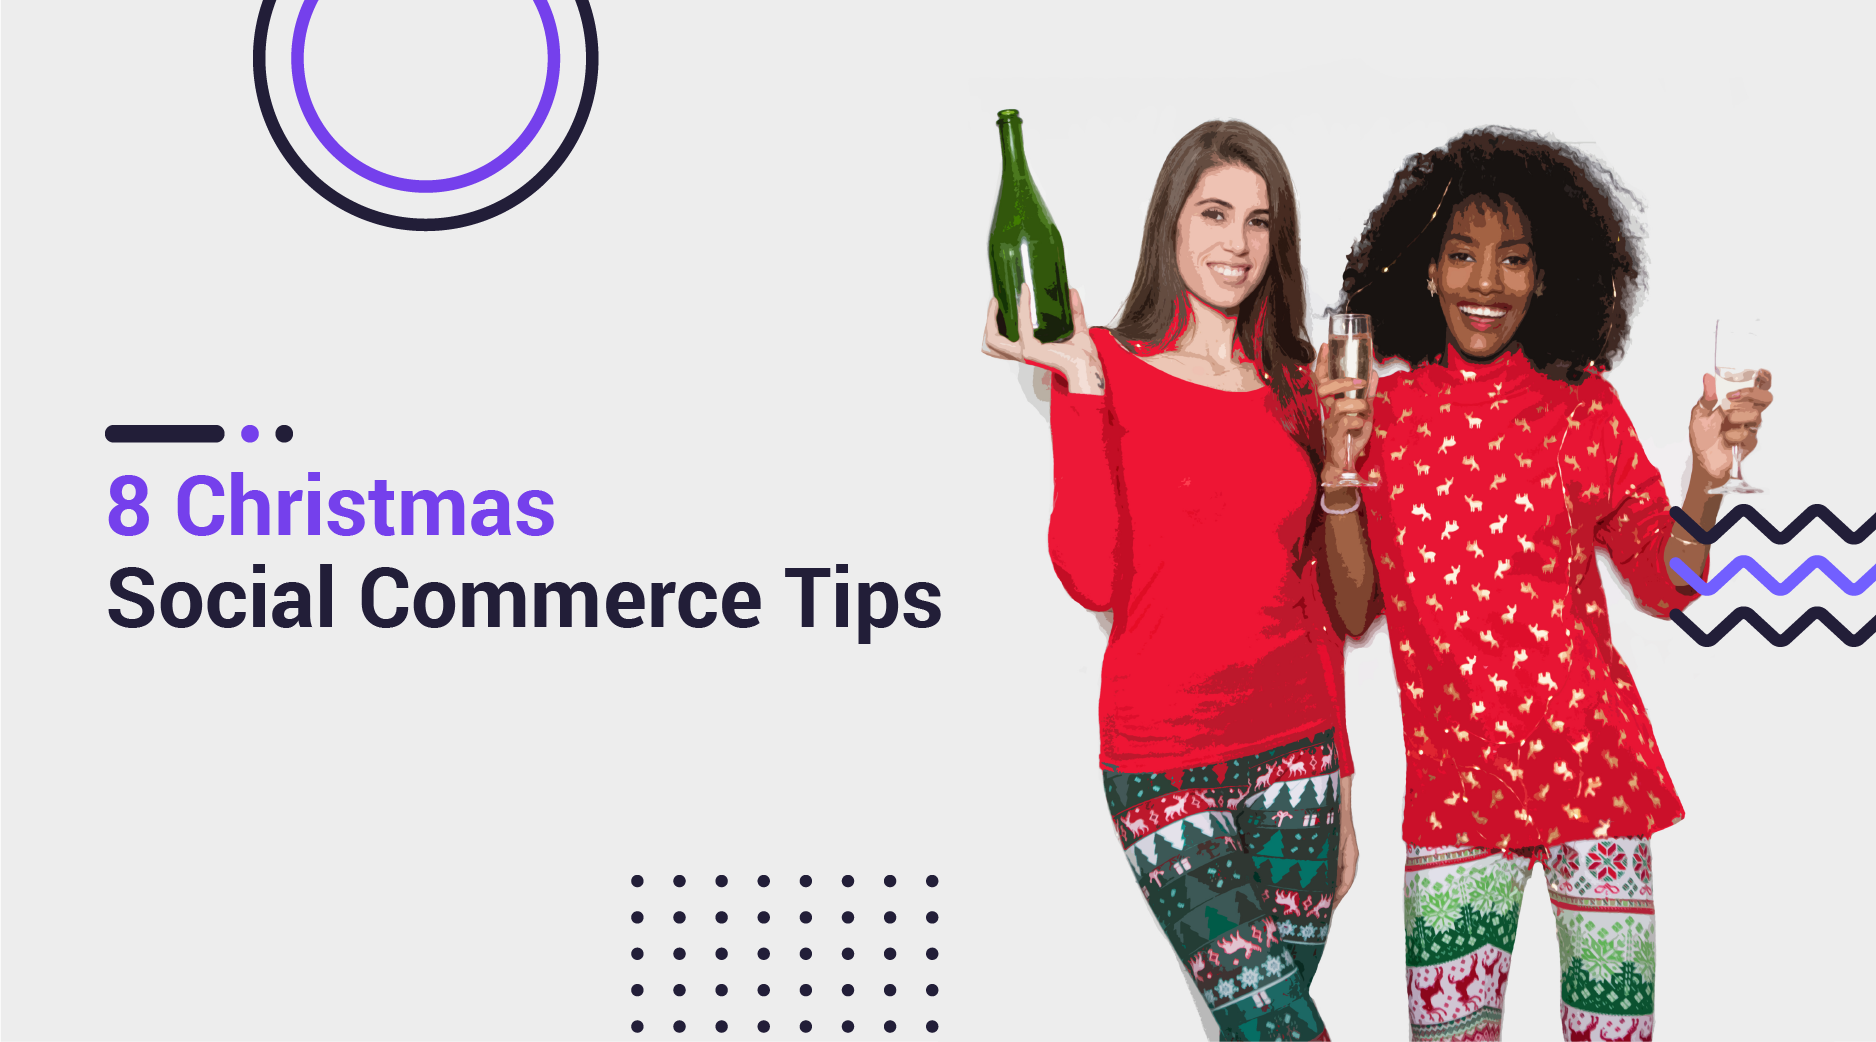 8 Social Commerce Campaign Tips for a Very Merry Christmas